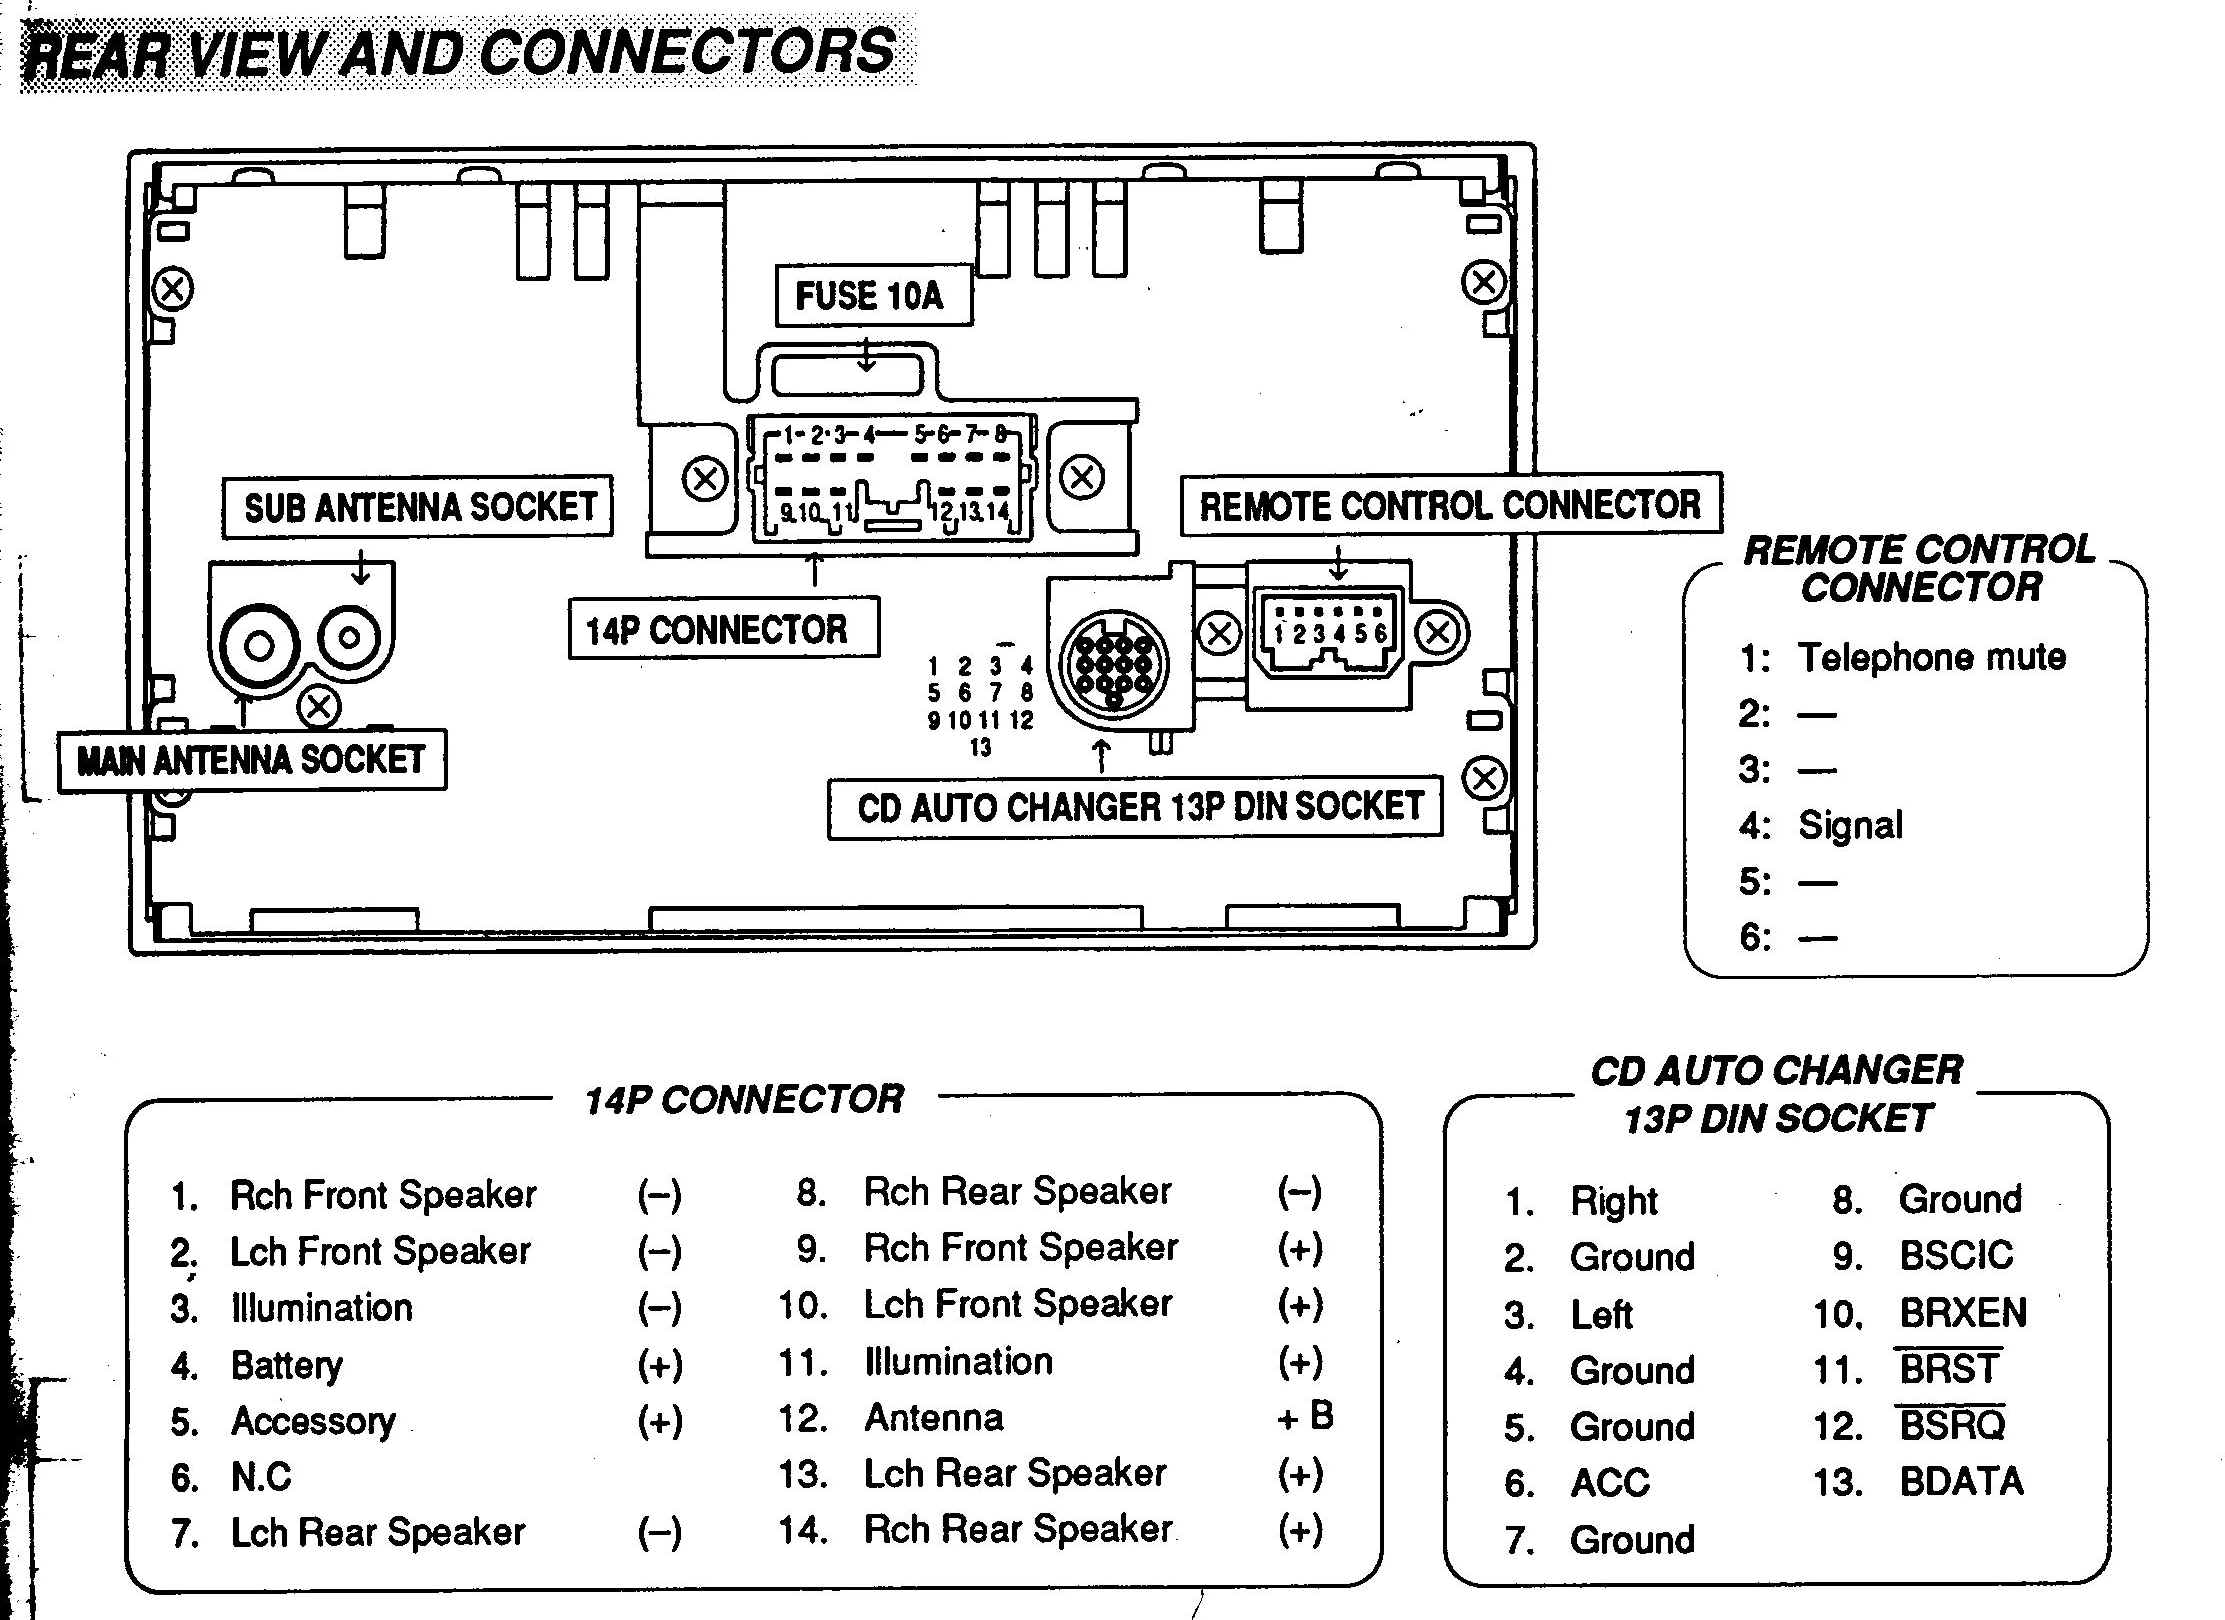 Car Stereo Repair - Wire Harness Codes and Diagrams - Bose Car Stereo